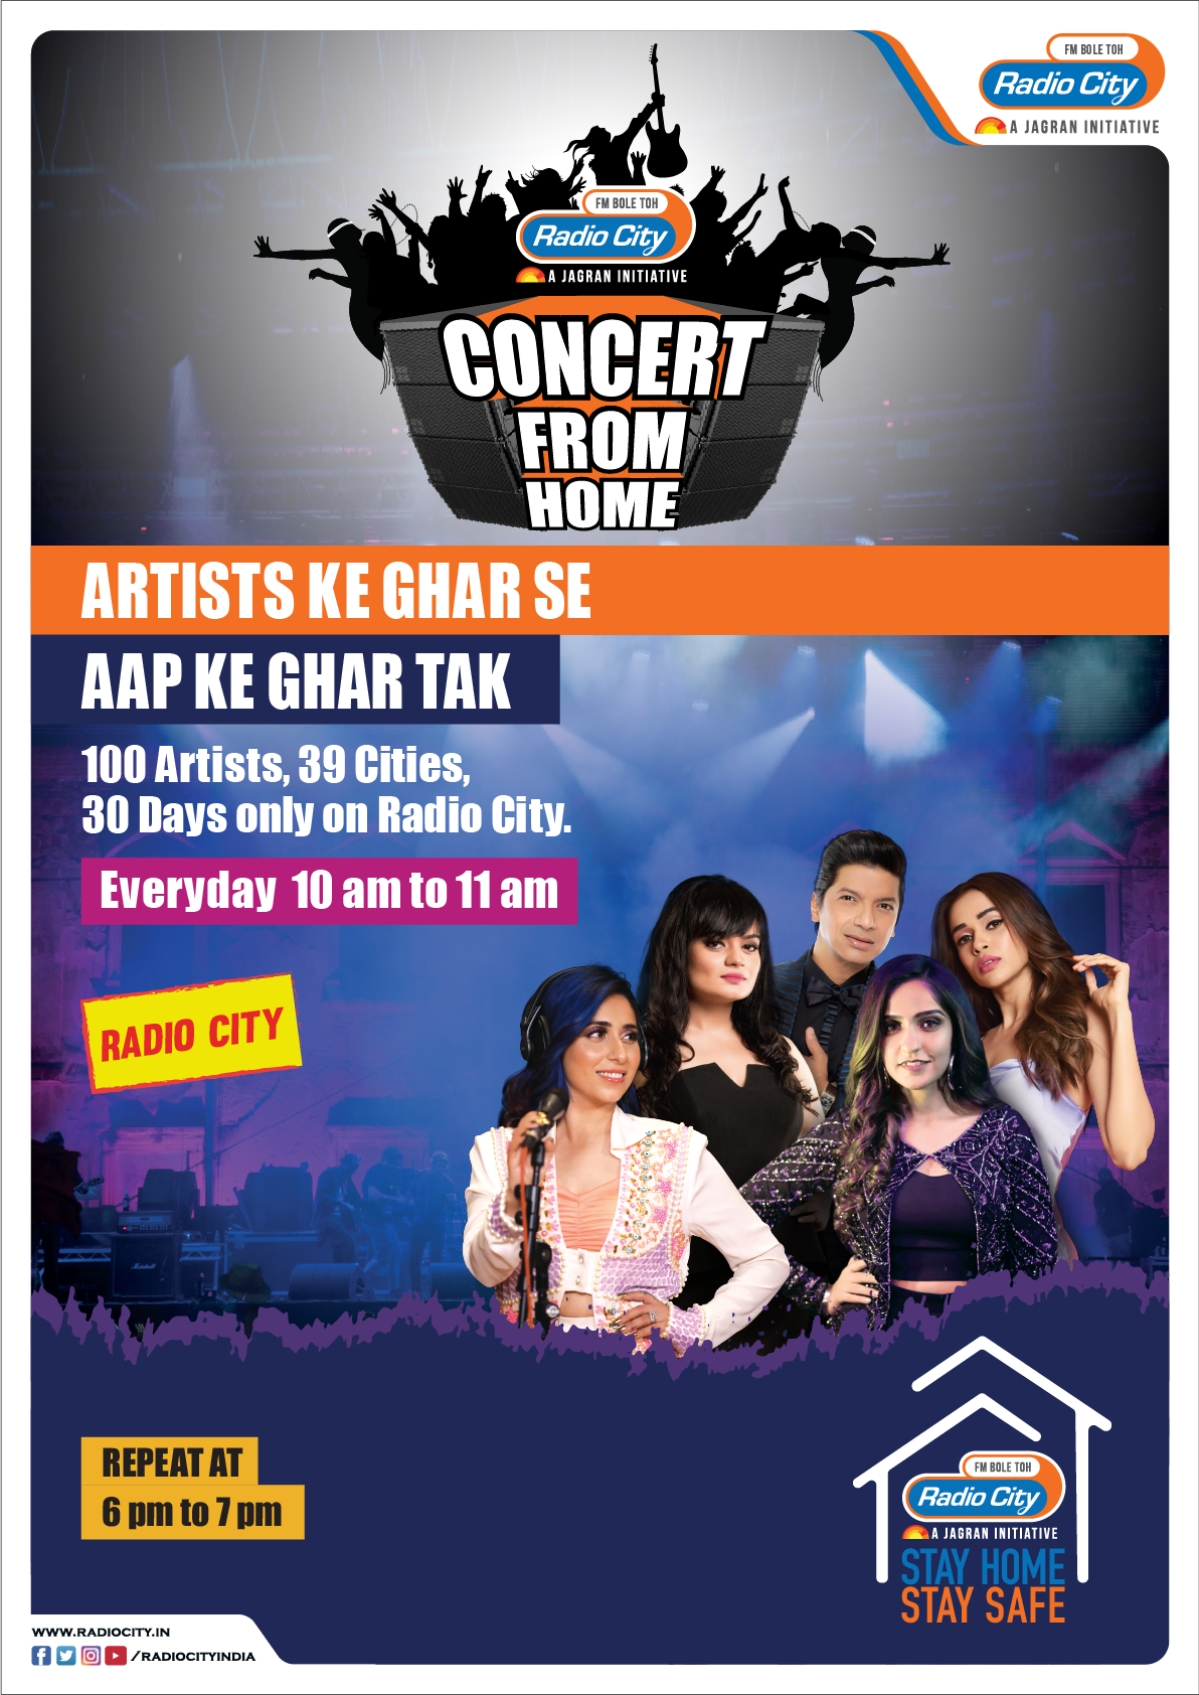 Radio City's 'Concert From Home' Features 100 plus artists over 30 days across 39 cities!